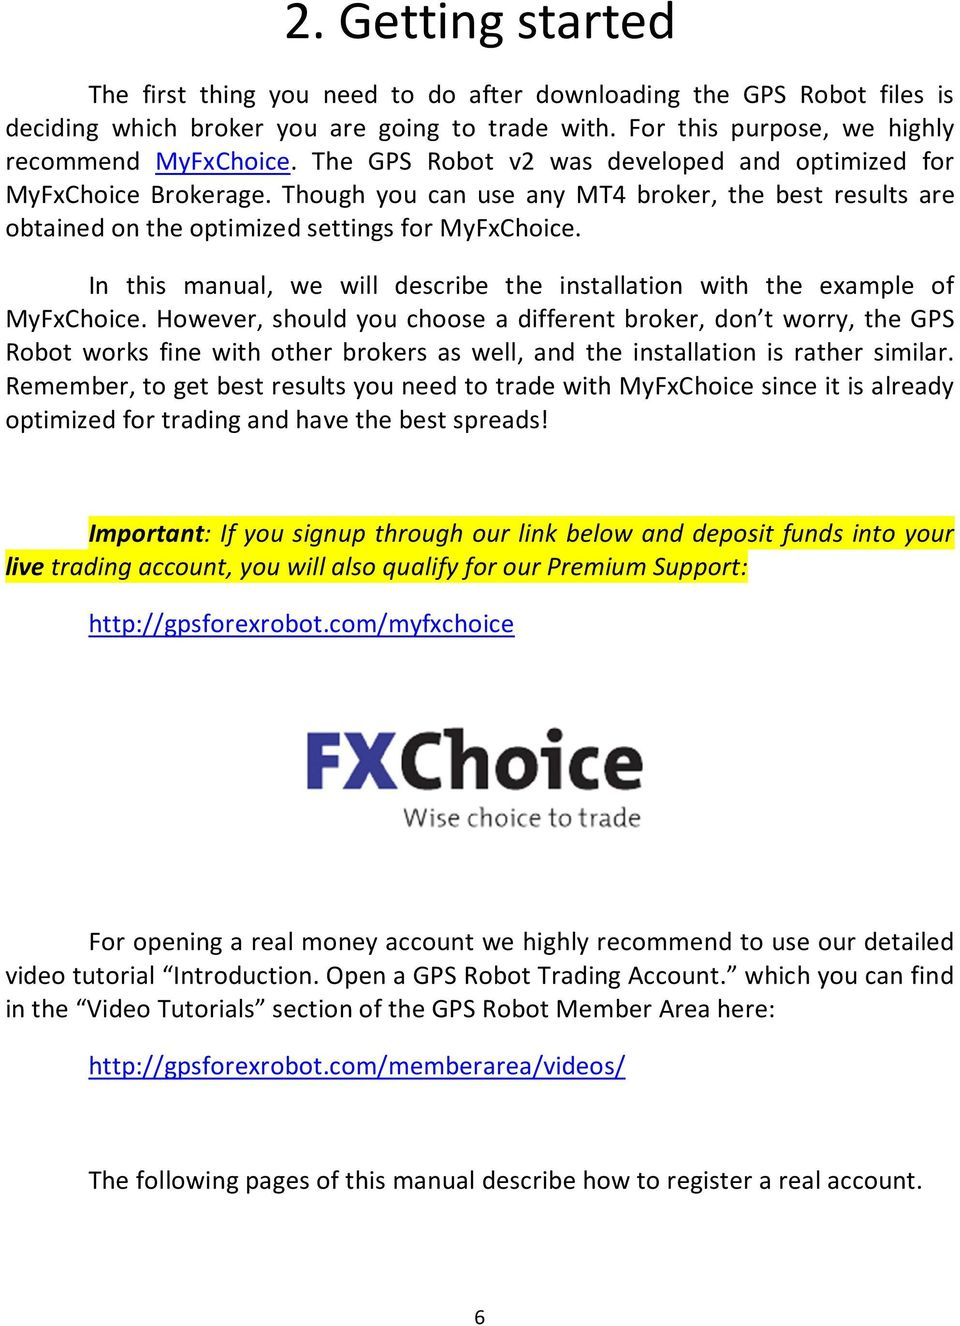 In this manual, we will describe the installation with the example of MyFxChoice.